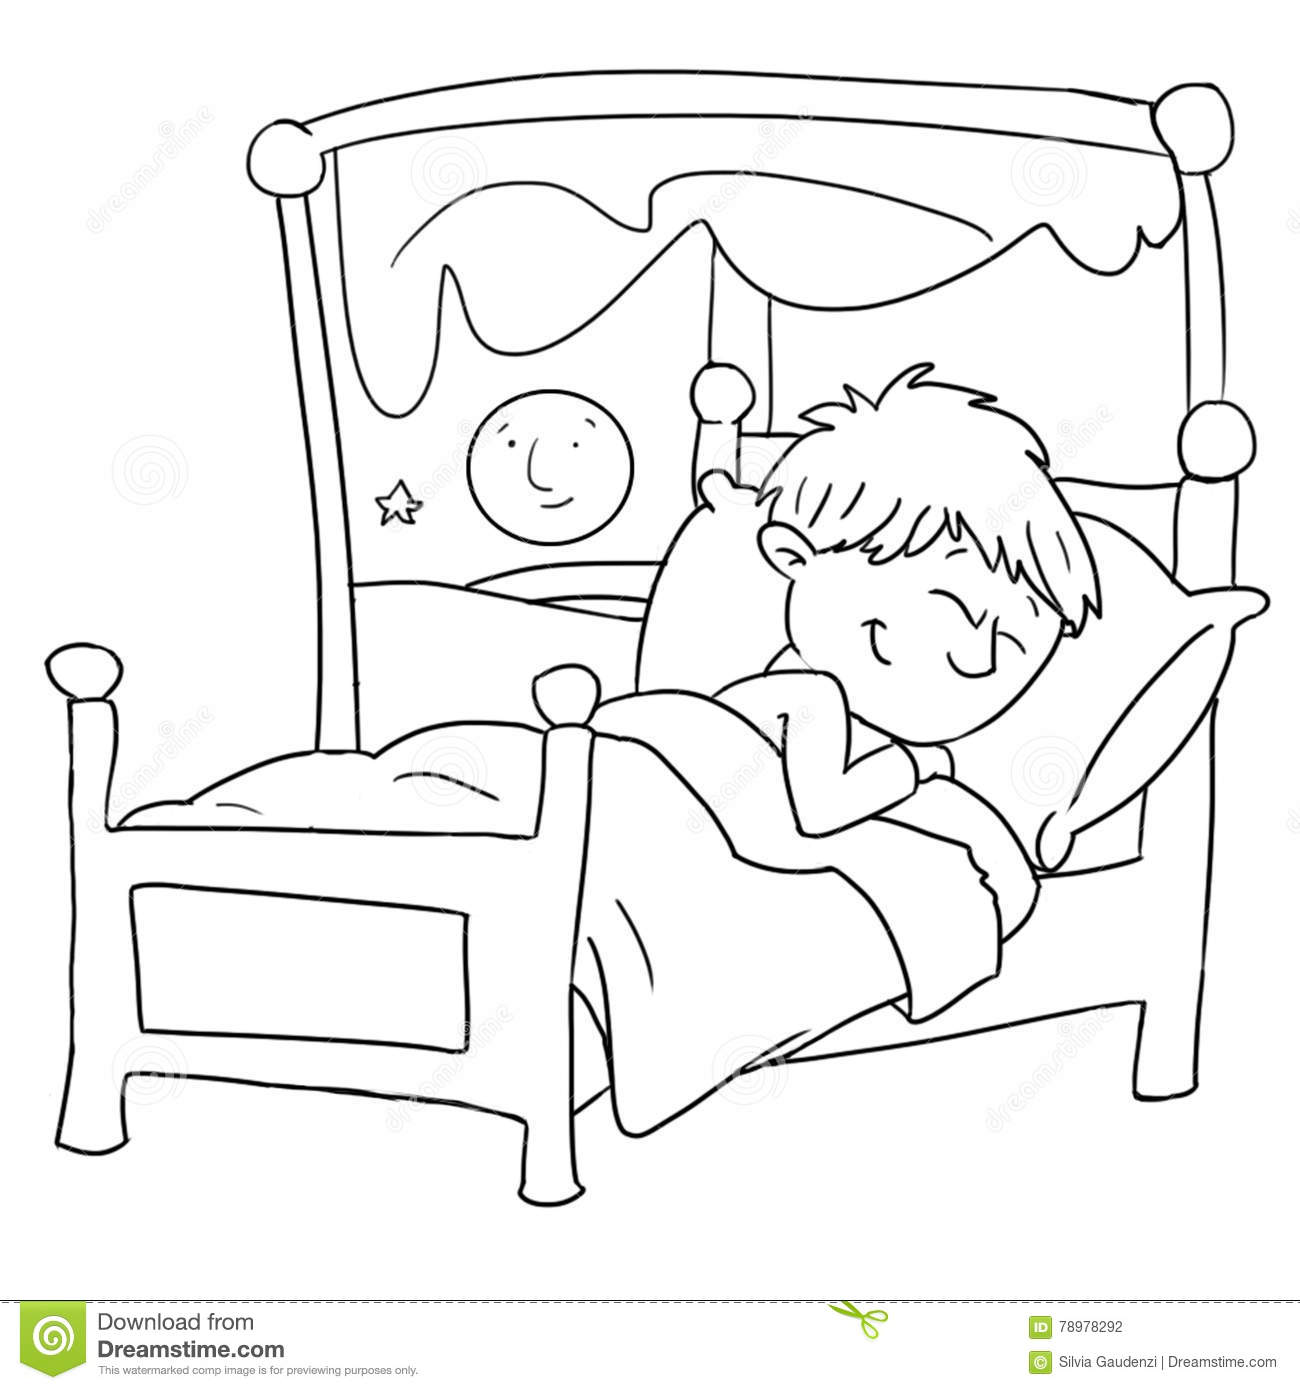 Child sleeping clipart black and white » Clipart Station.